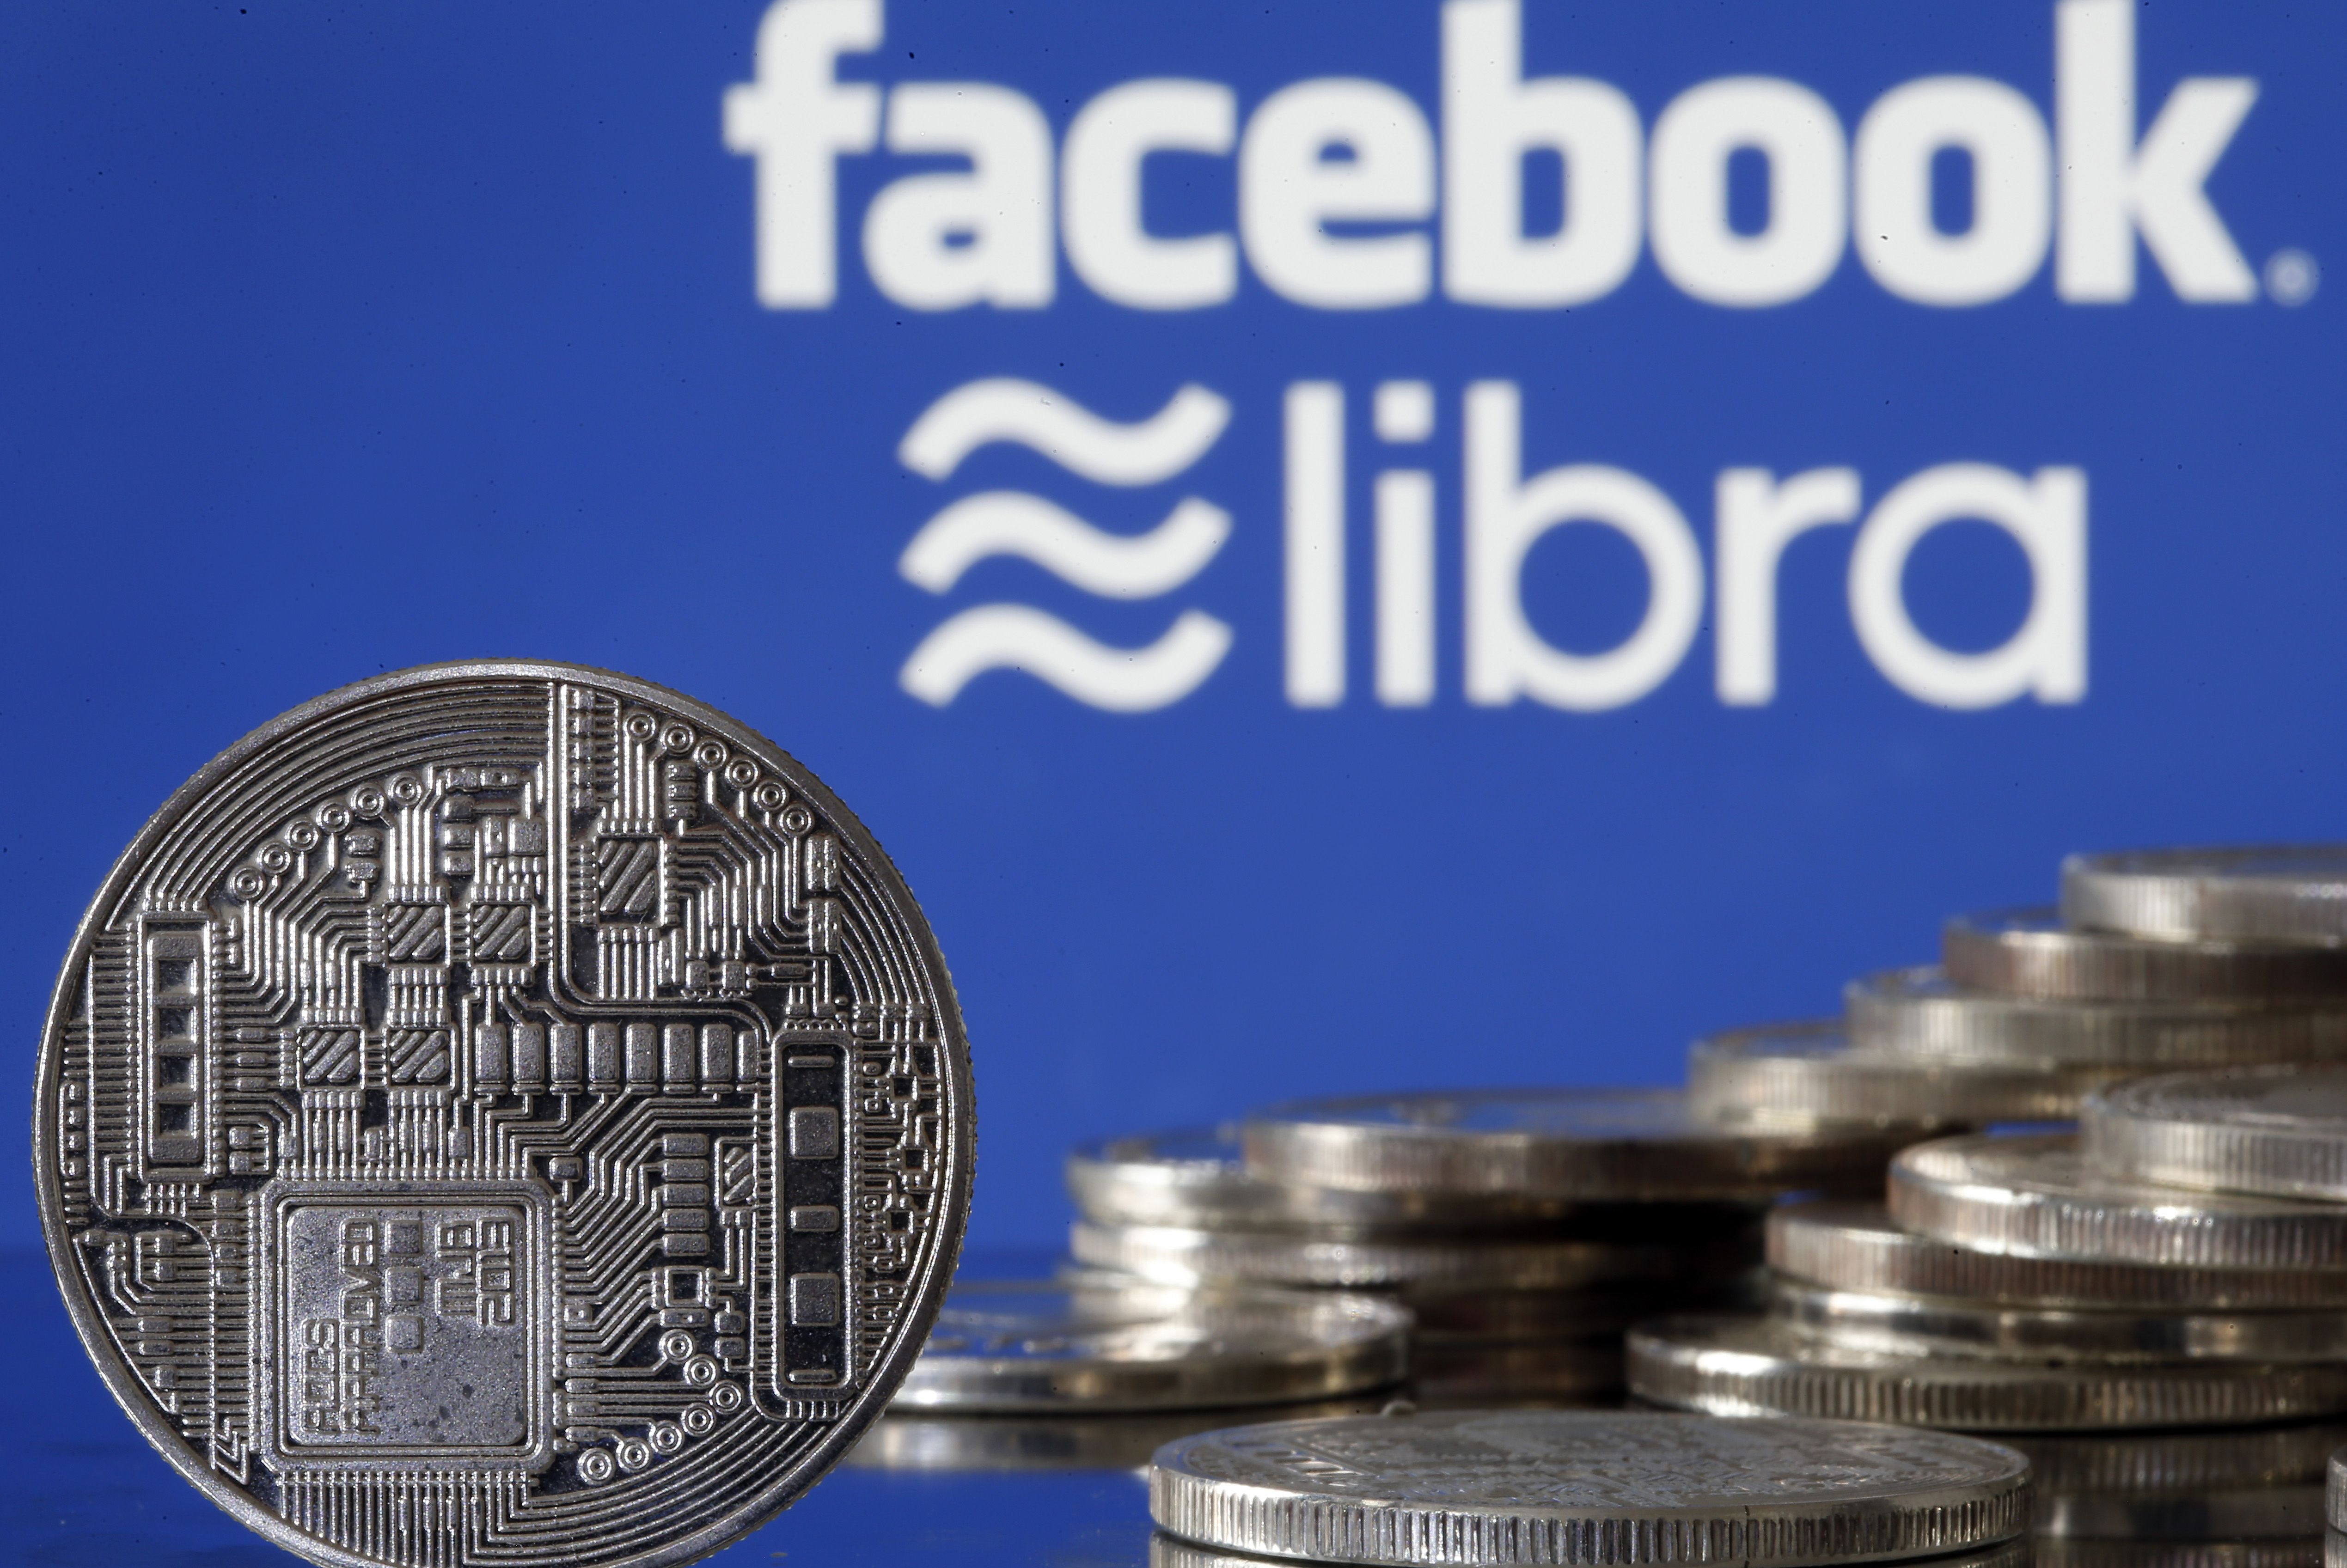 If Facebook's libra doesn't take off, China is racing to launch a global cryptocurrency that could